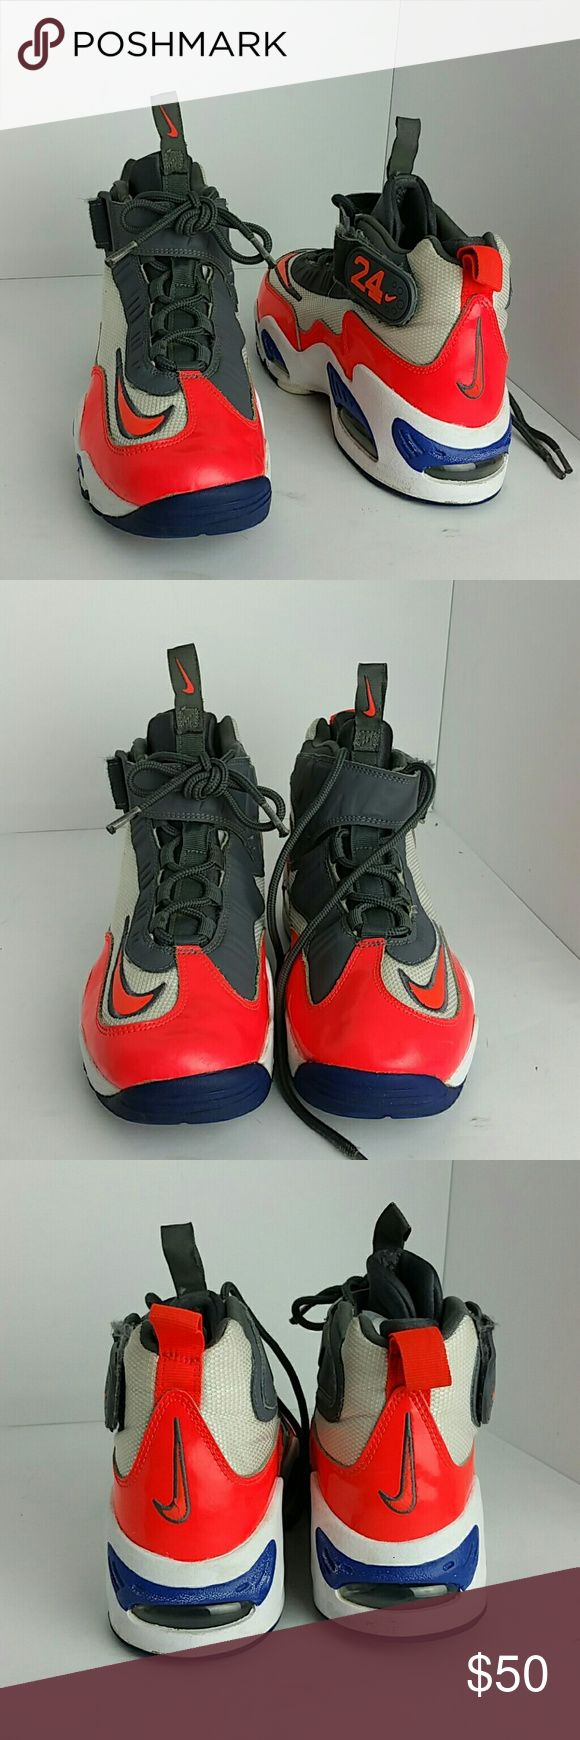 NIKE AIR GRIFFEY MAX 1 WOMEN/YOUTH SHOES IN GOOD CONDITION   THIS IS A YOUTH SIZE 7Y WHICH IS WOMEN SIZE 8.5  SKE # KU4 NIKE Shoes Athletic Shoes